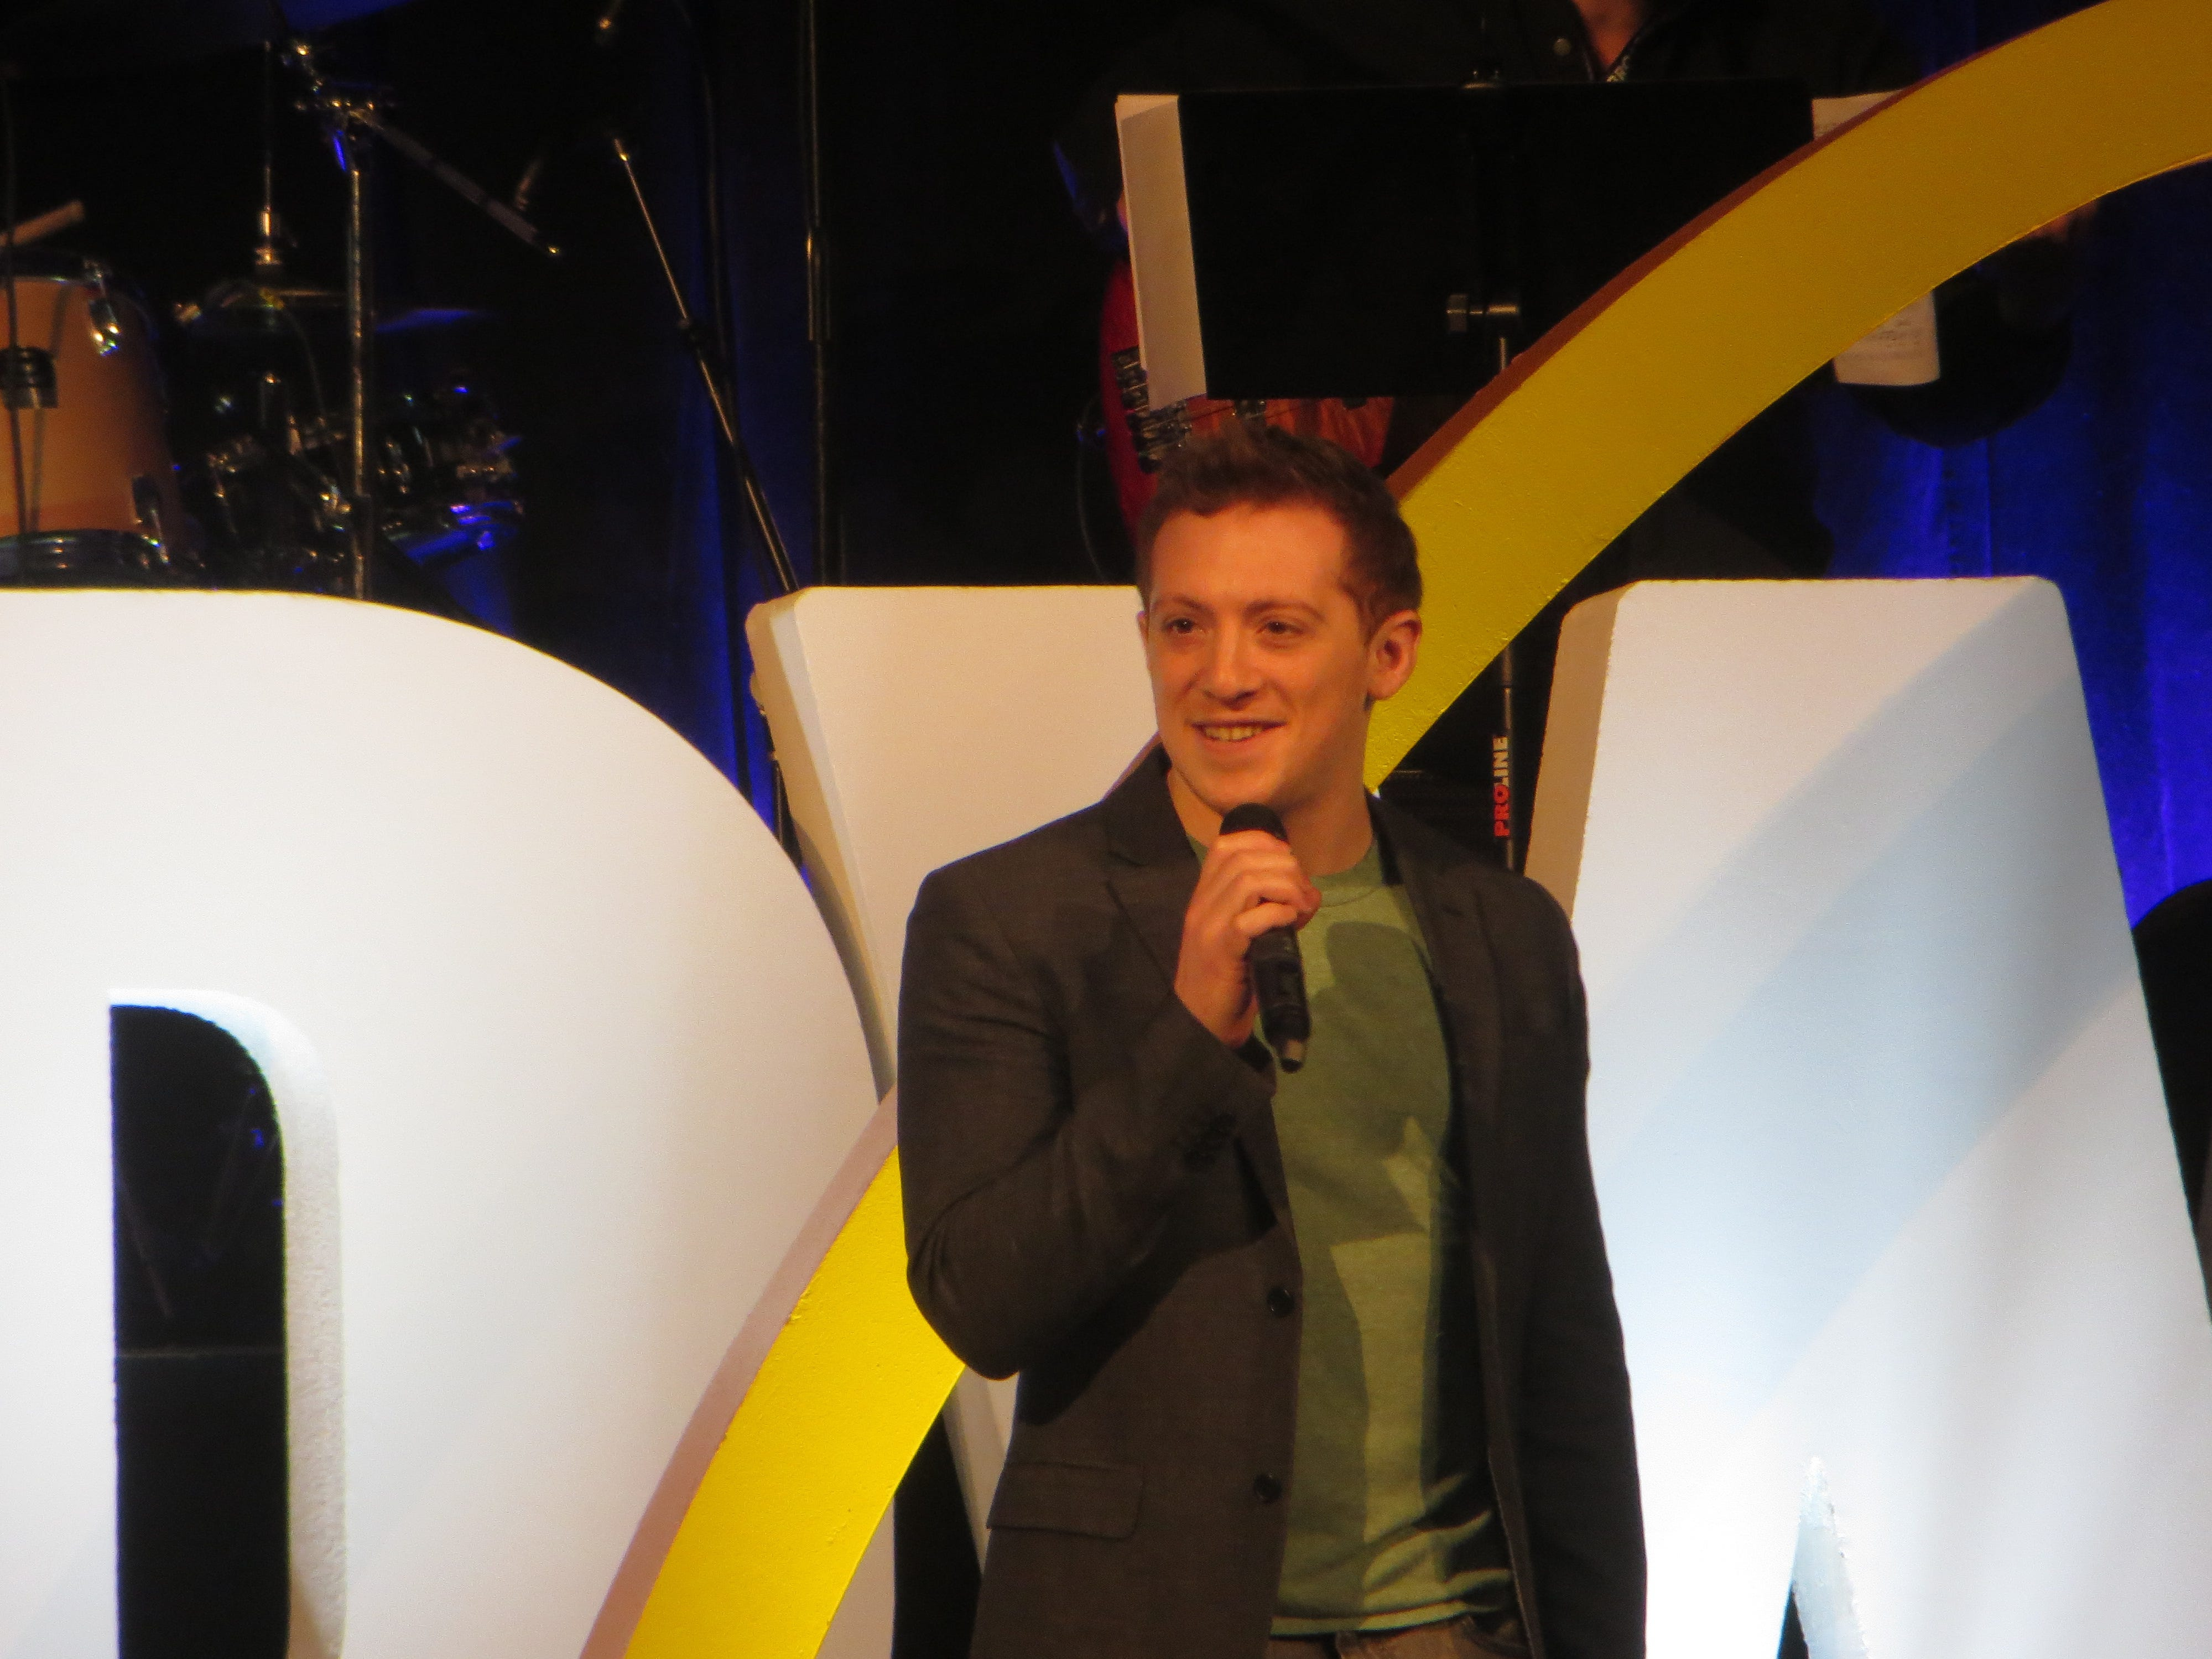 Ethan Slater sings in the opening ceremony at BroadwayCon 2019, held Jan. 11 to 13, 2019, at the New York Hilton Midtown in Manhattan.